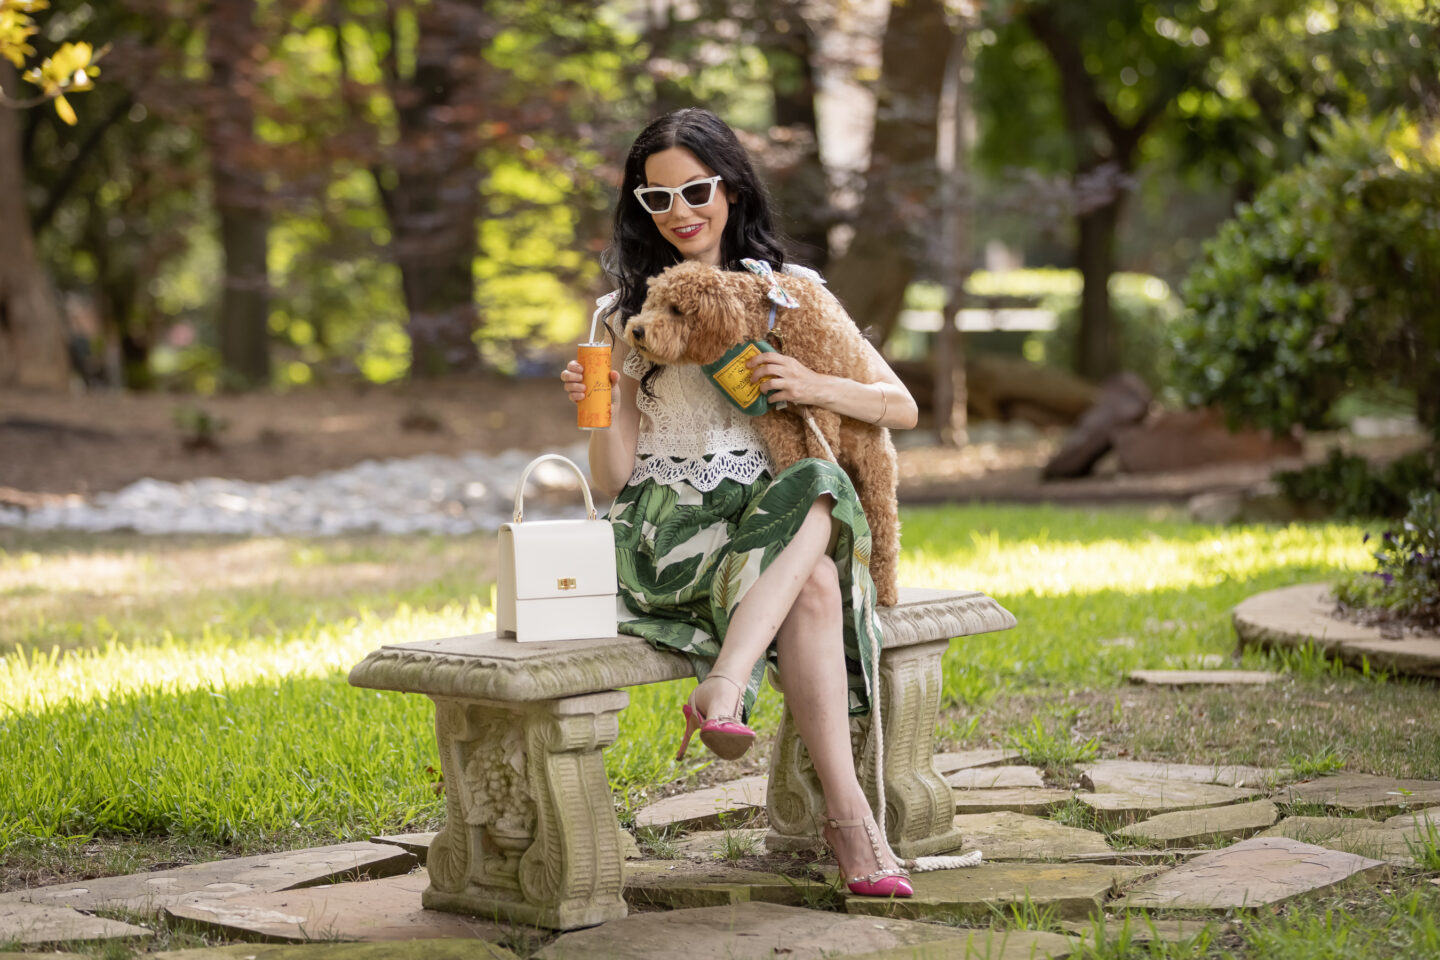 Palm Print Skirt, Neely & Chloe Bag, White Lace Top, Pink Pumps, Fashion Blogger, Fall Transitional Style, Mini Goldendoodle puppy, Fashion Blogger, Presto Sparkling Cuvee   Palm Print Skirt by popular Dallas fashion blog, Pretty Little Shoppers: image of a woman holding her dog outside and wearing a palm print skirt, lace cropped top, and pink heels.